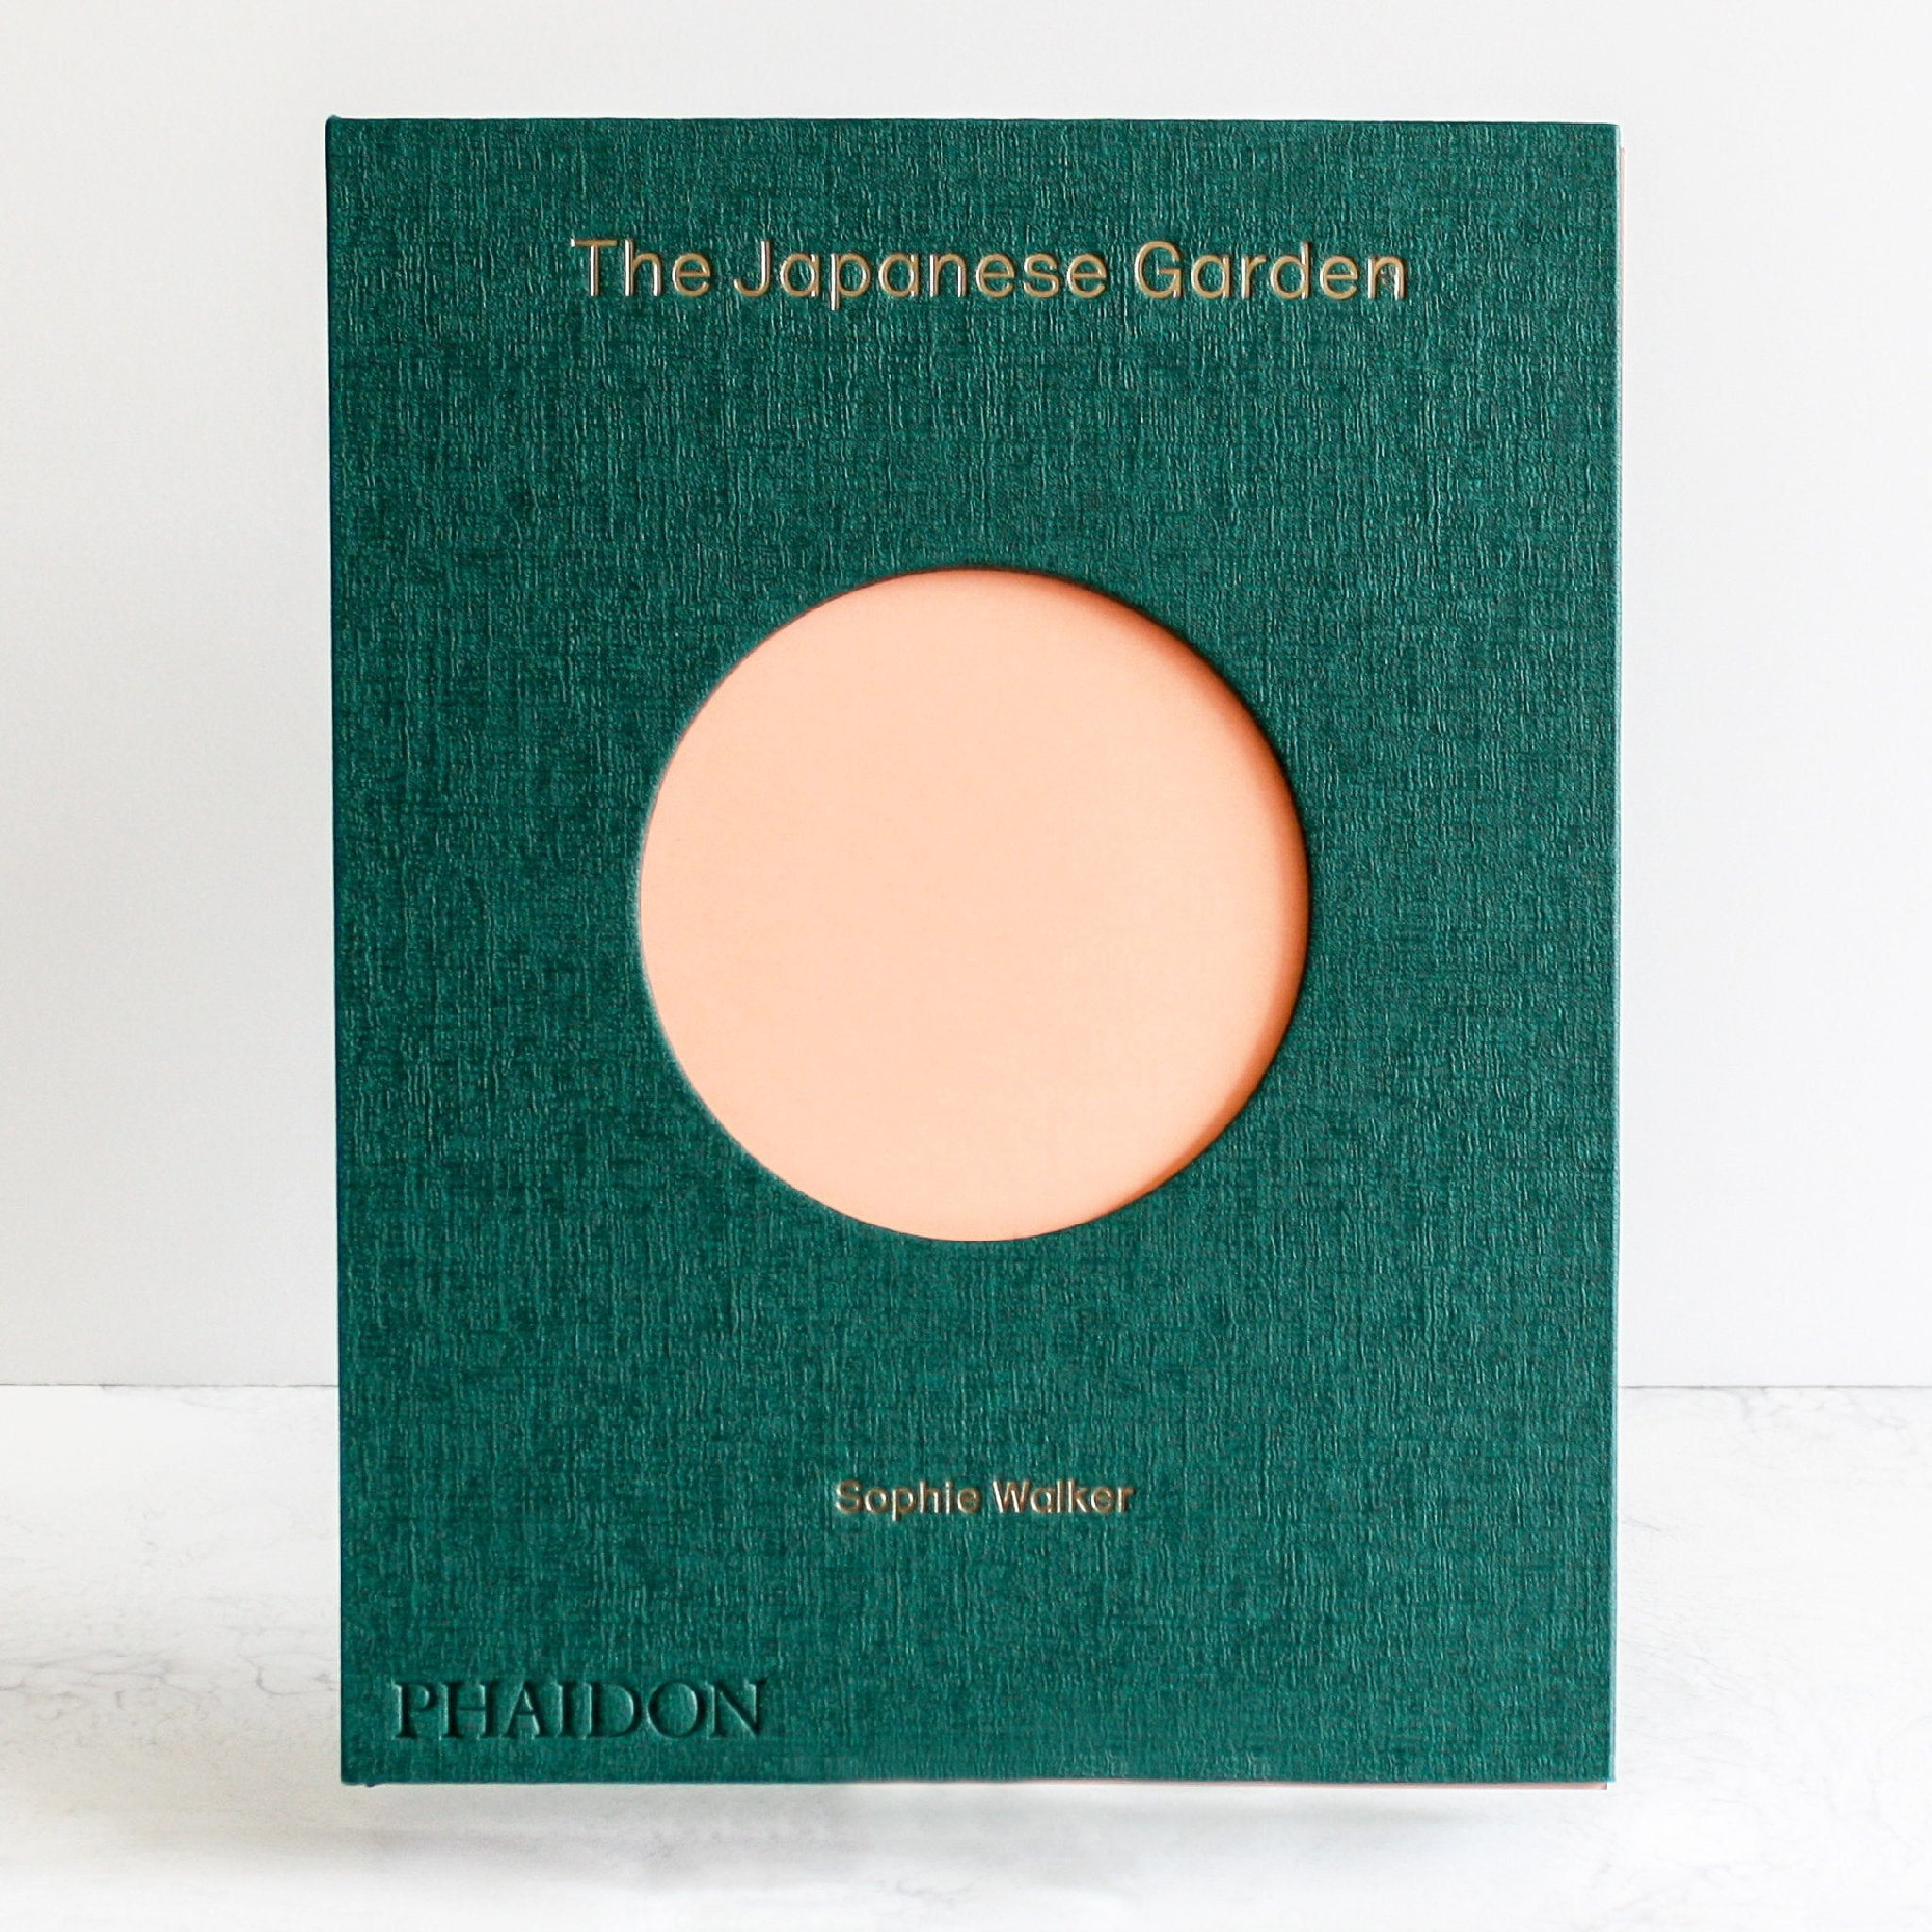 The Japanese Garden hardcover book green and pink by Sophie Walker